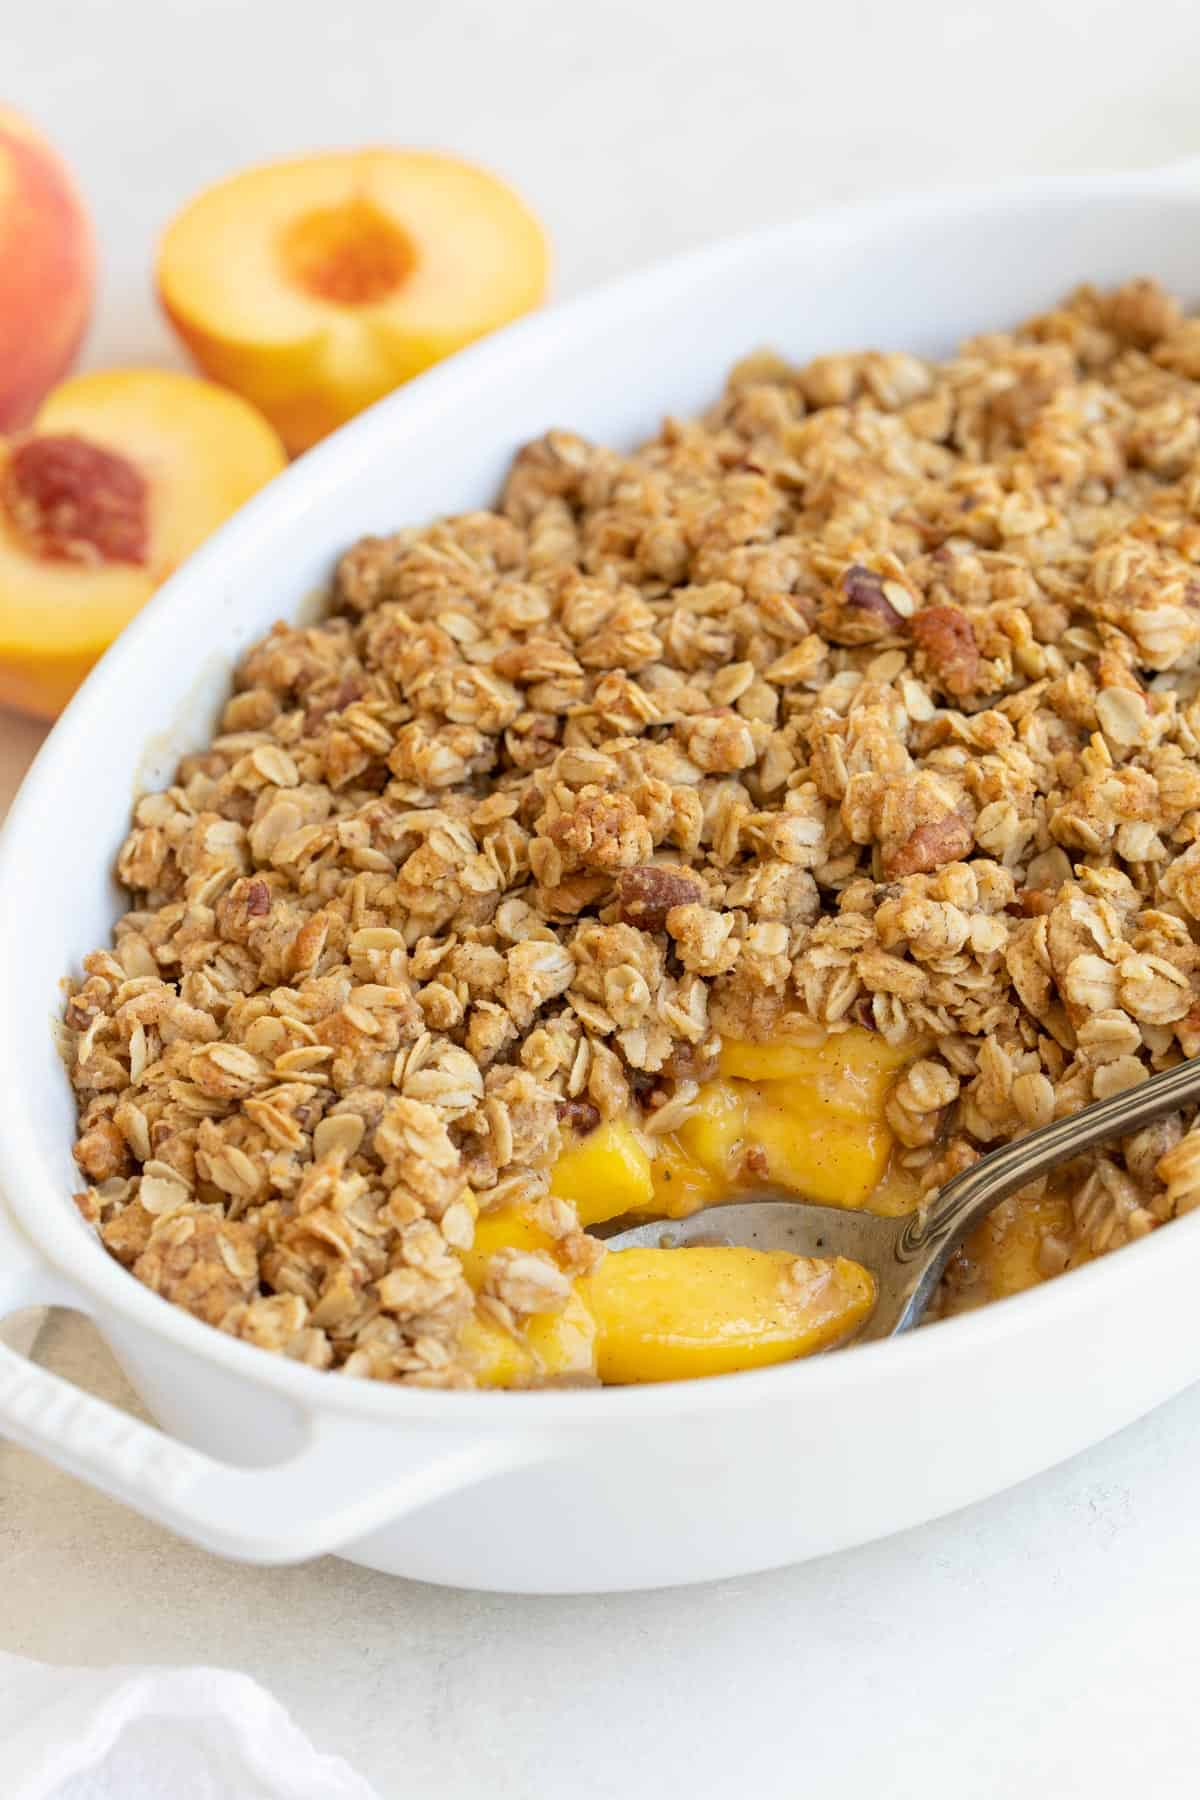 Front closeup view of peach crisp with an oat topping in a white baking dish.